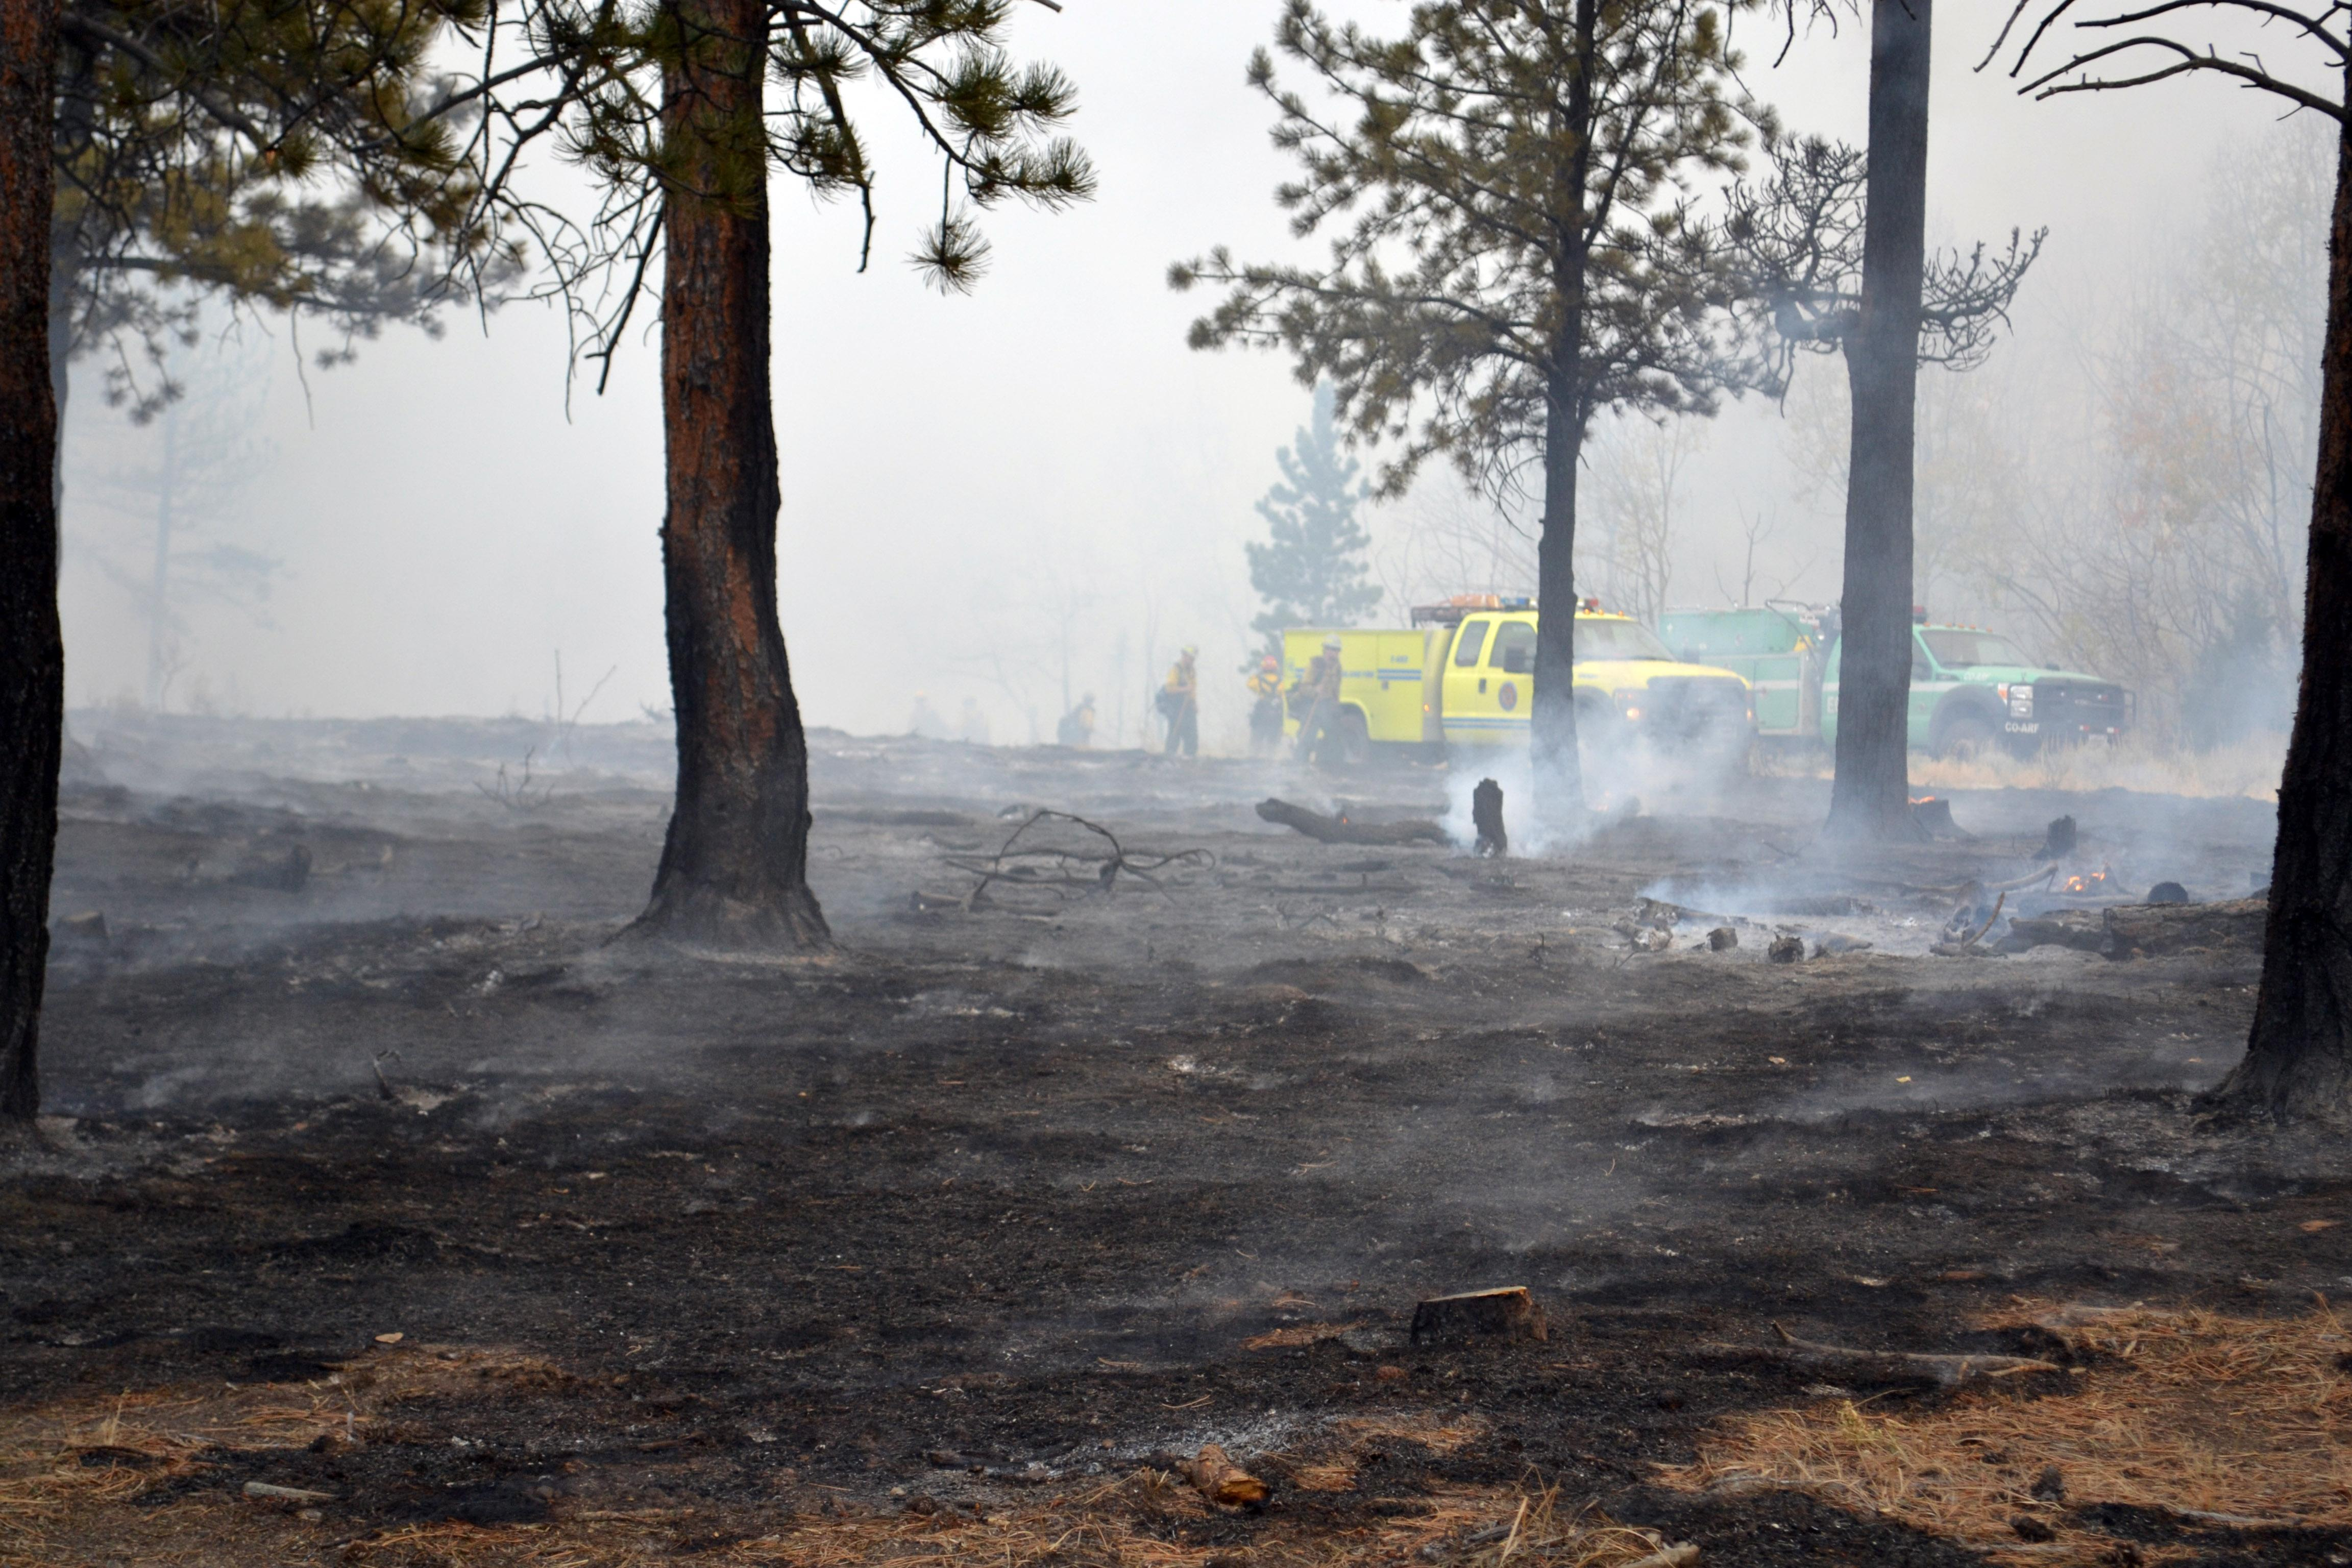 Blackened ground in the foreground with two fire engines, one yellow and one green, are in the background.